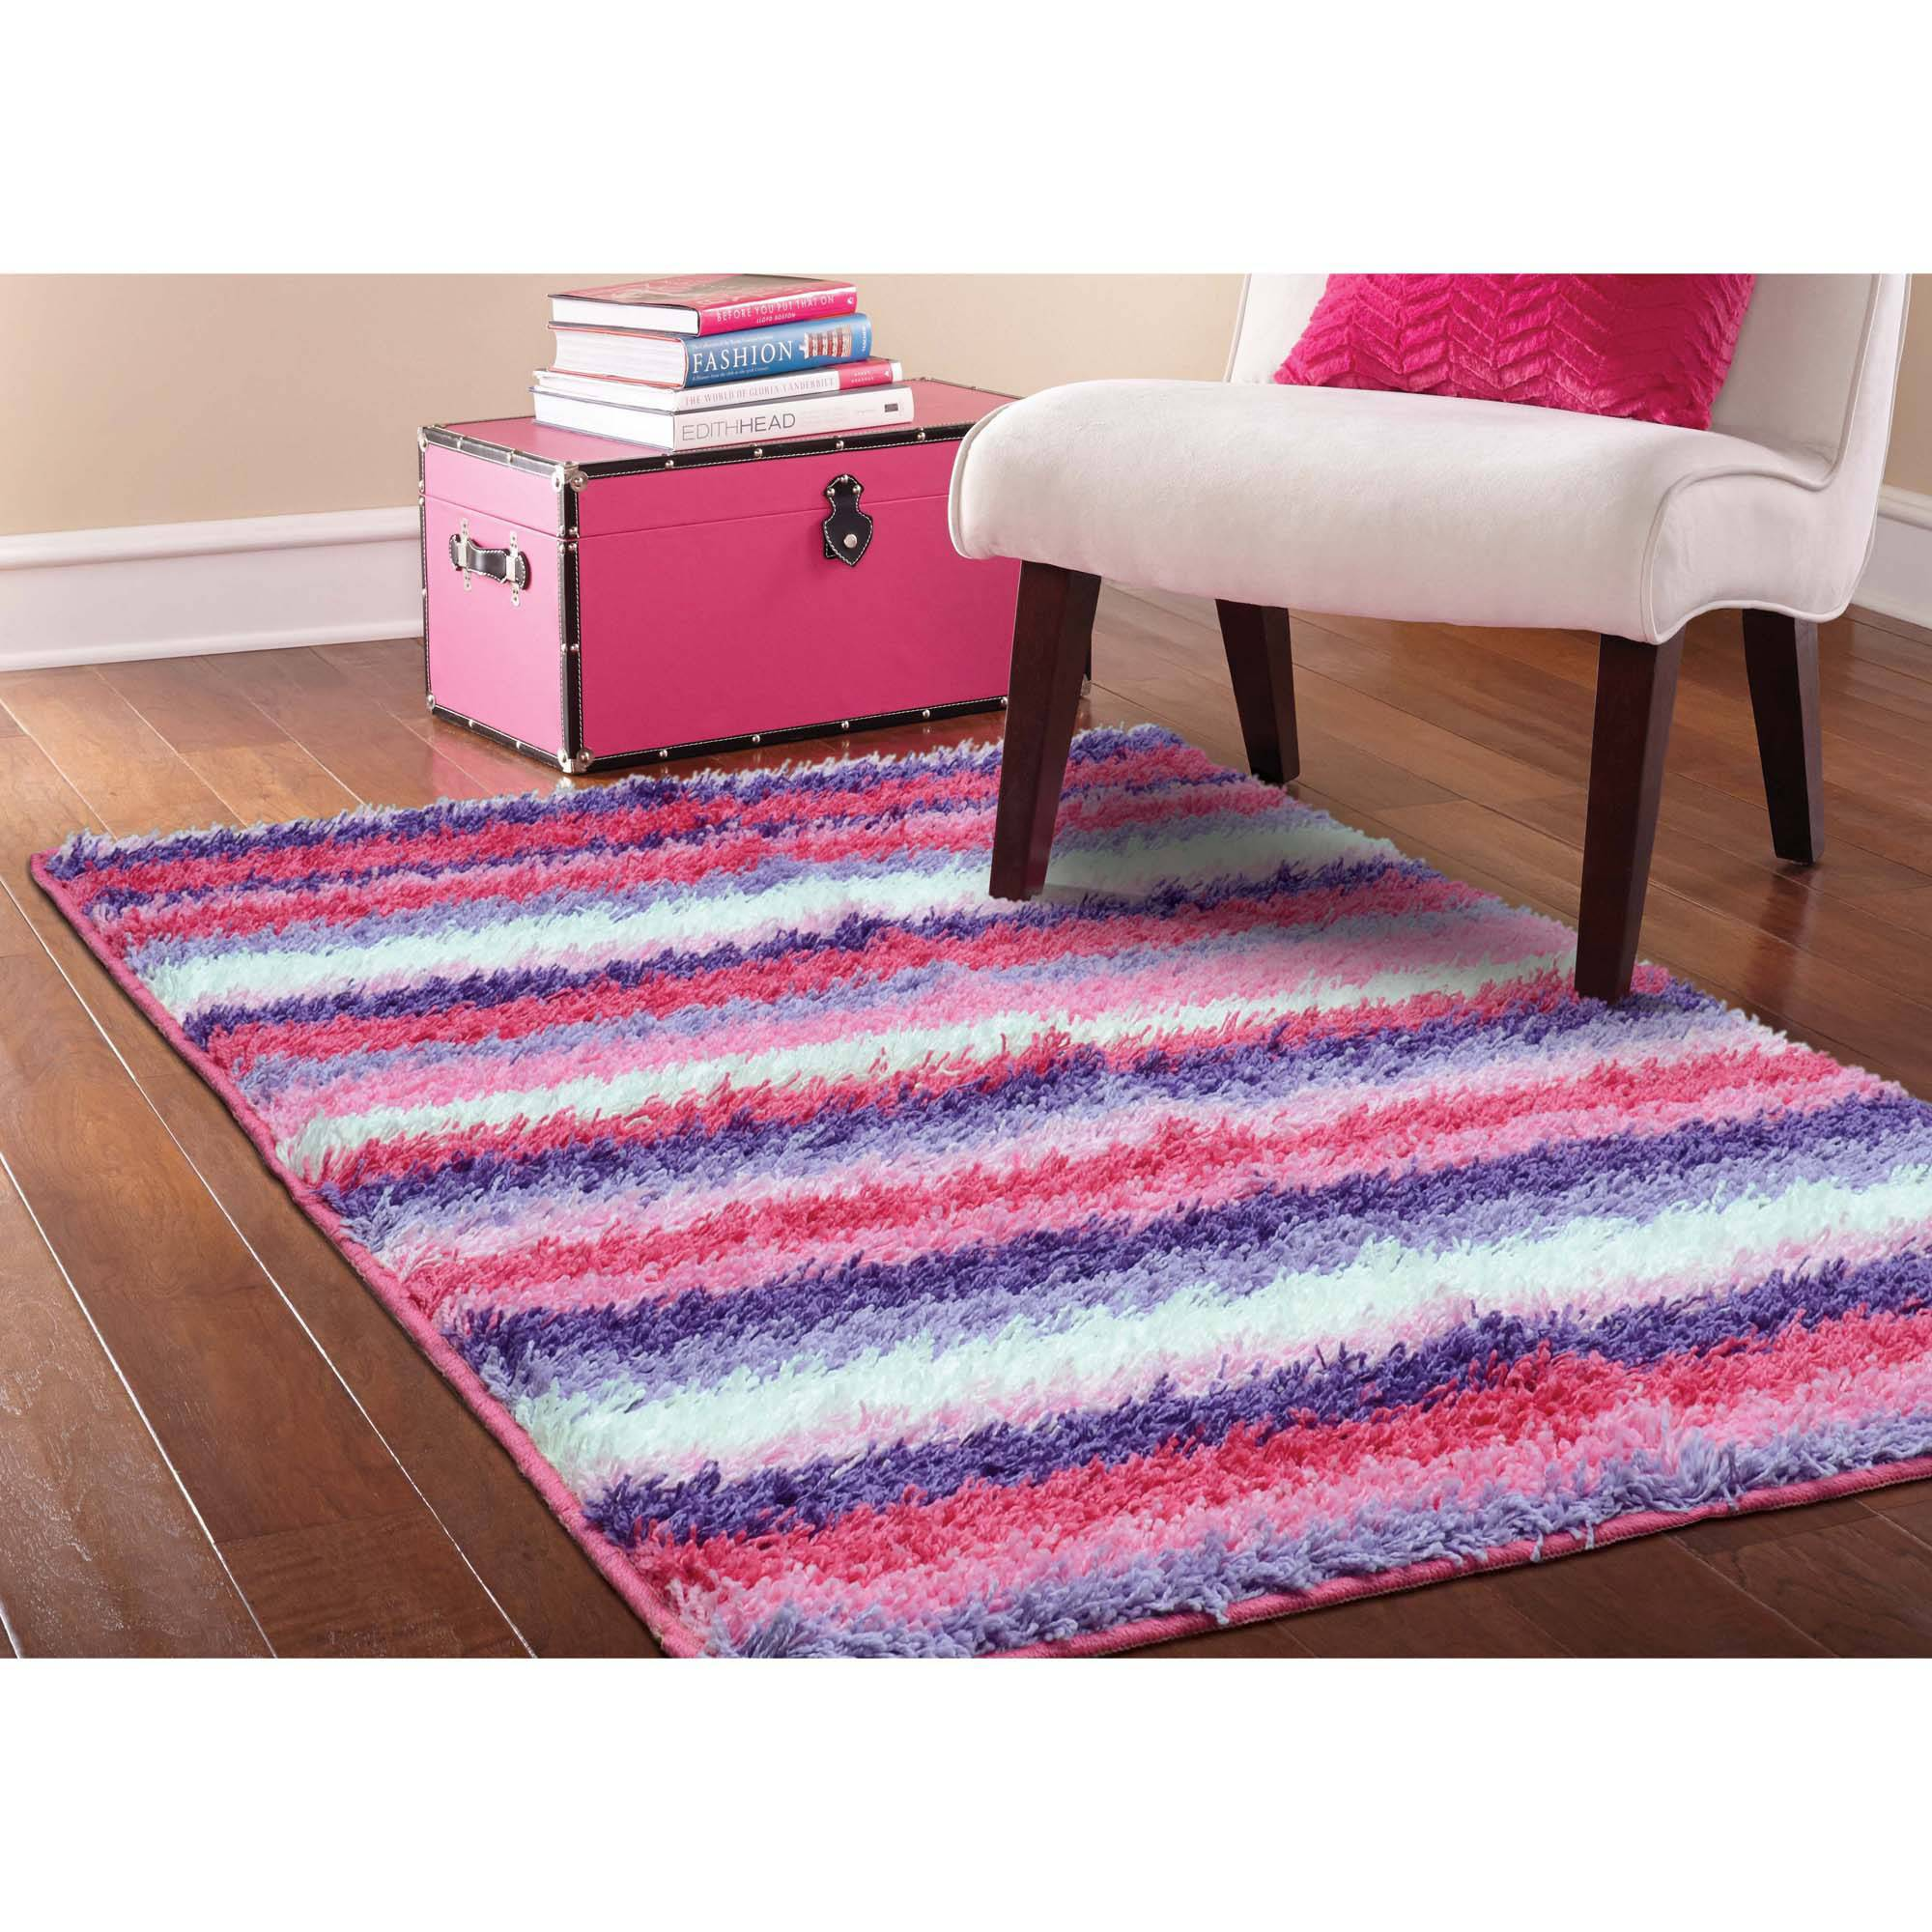 pastel kiddy pink play childrens bedroom rug e quality heart girls rugs polka from